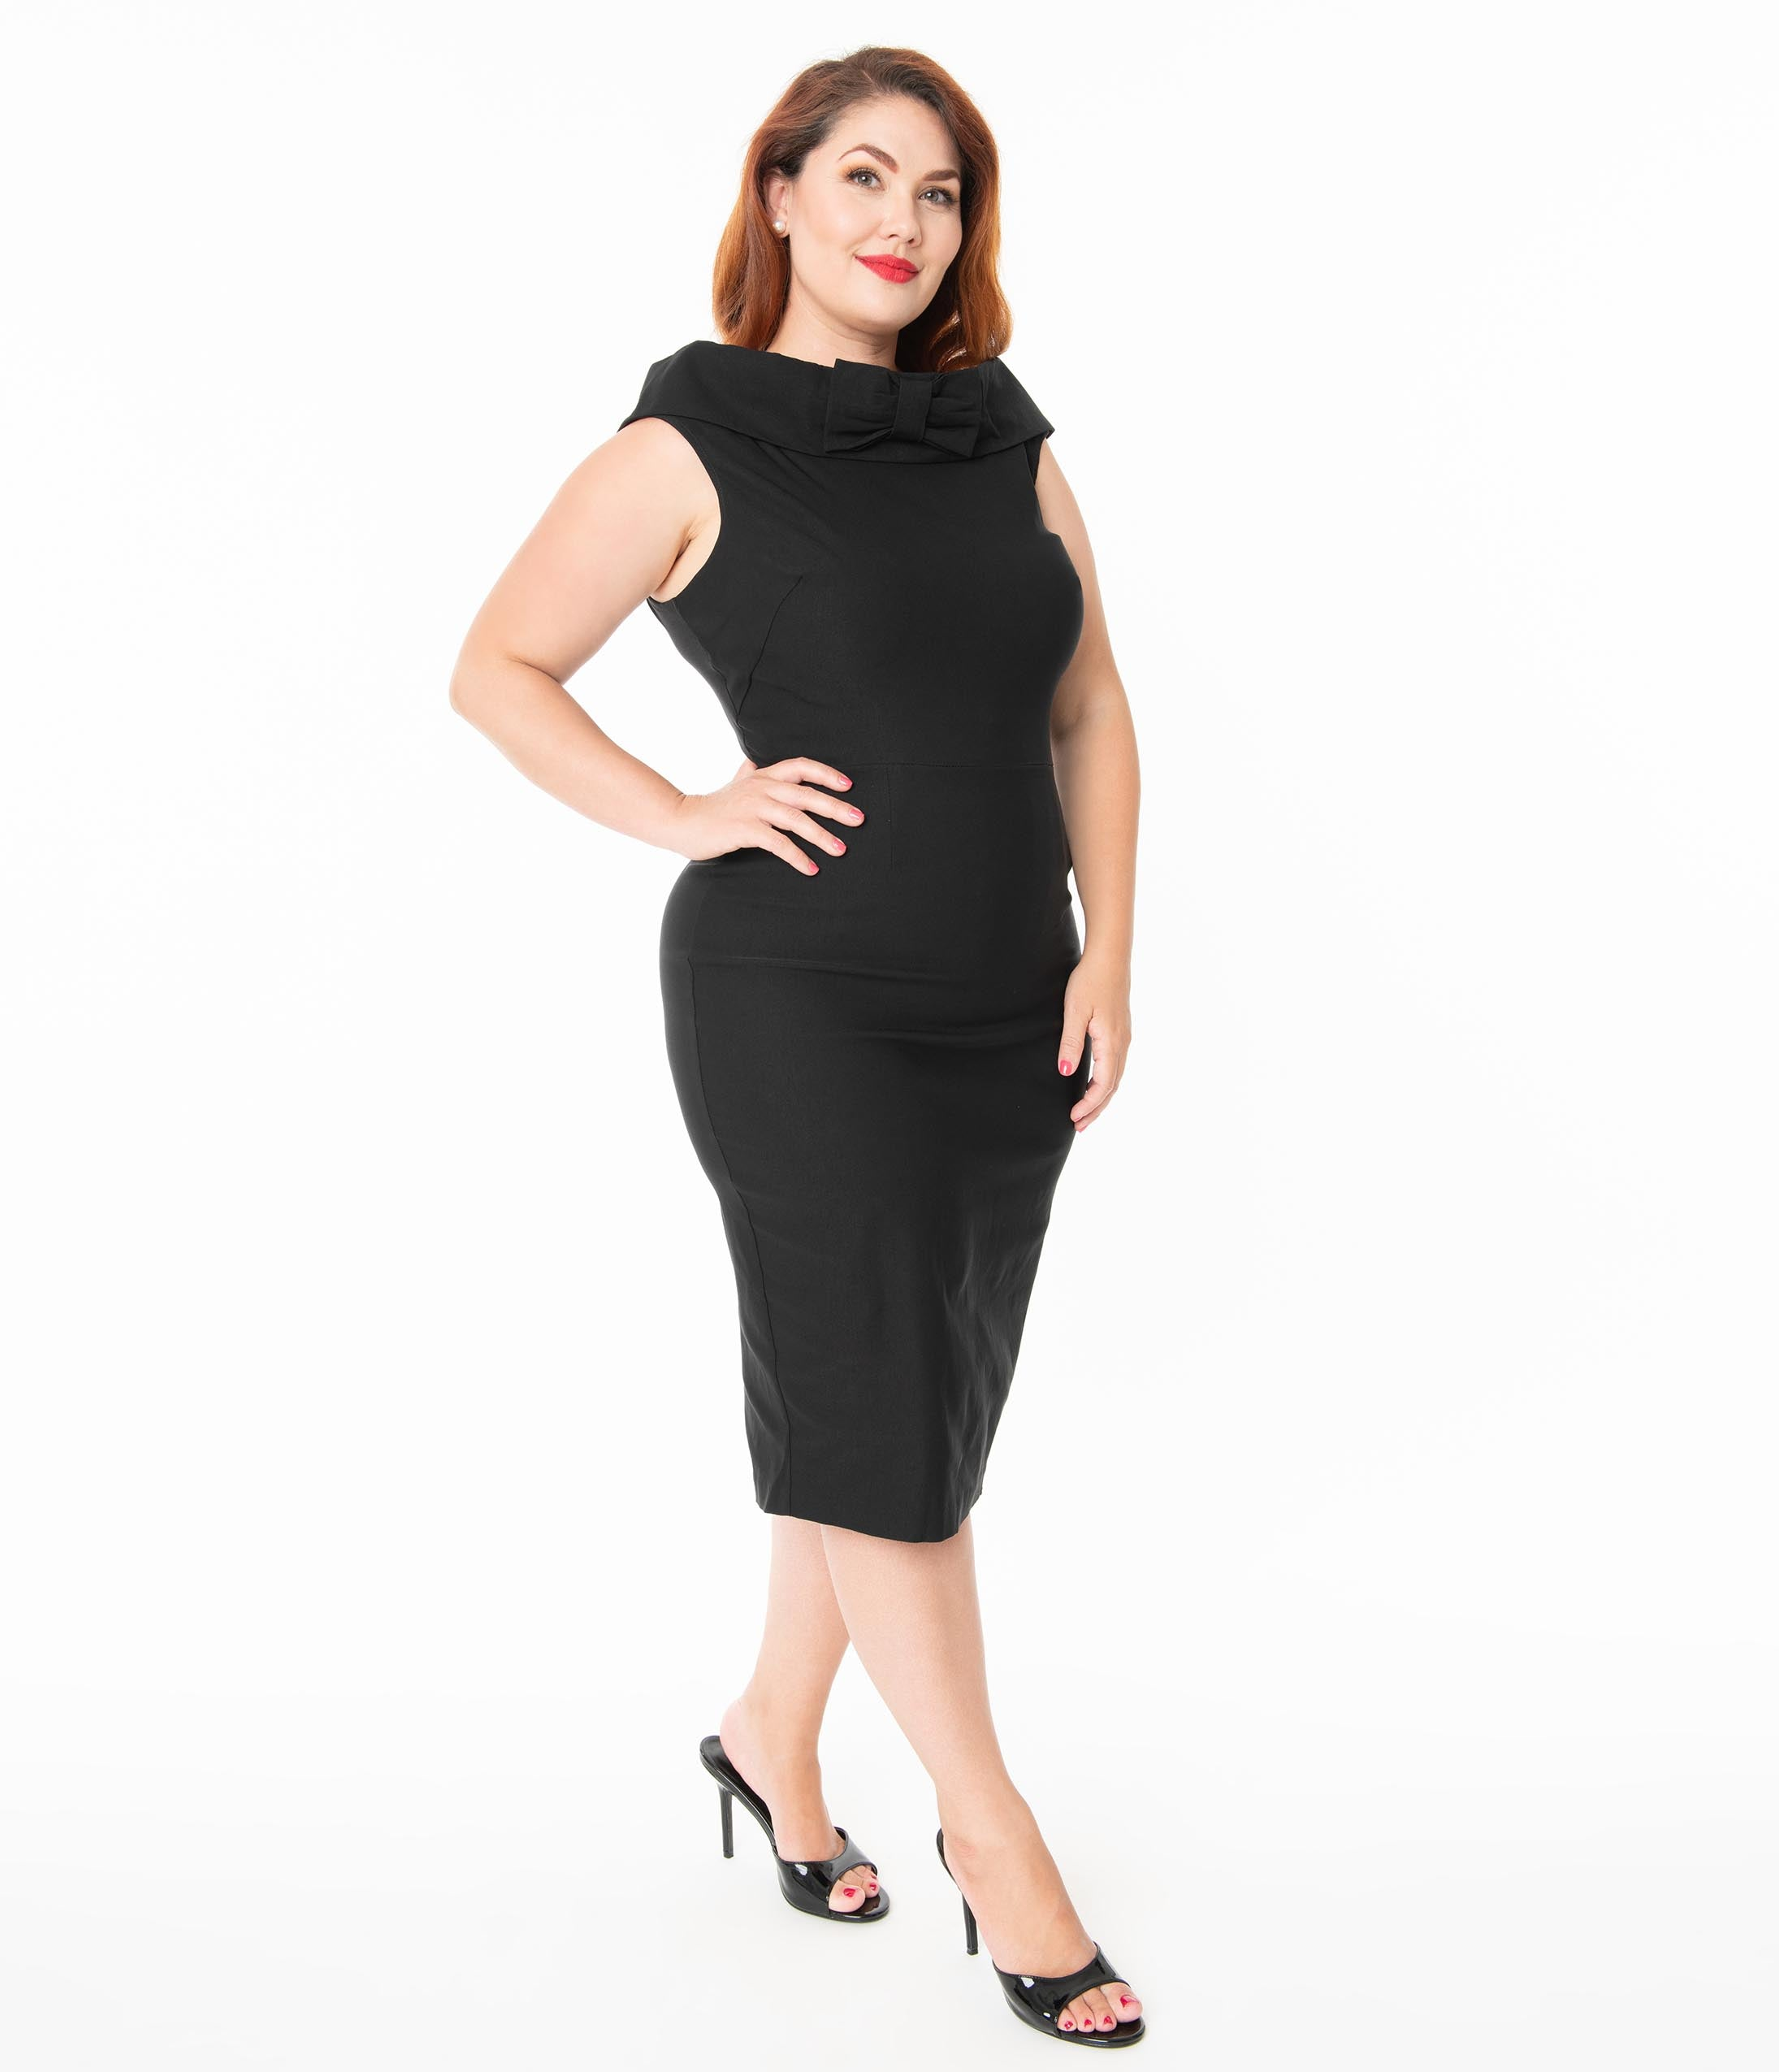 1950s Pencil Dresses & Wiggle Dress Styles Barbie X Unique Vintage Plus Size 1960S Style Black Sheath Dress $98.00 AT vintagedancer.com